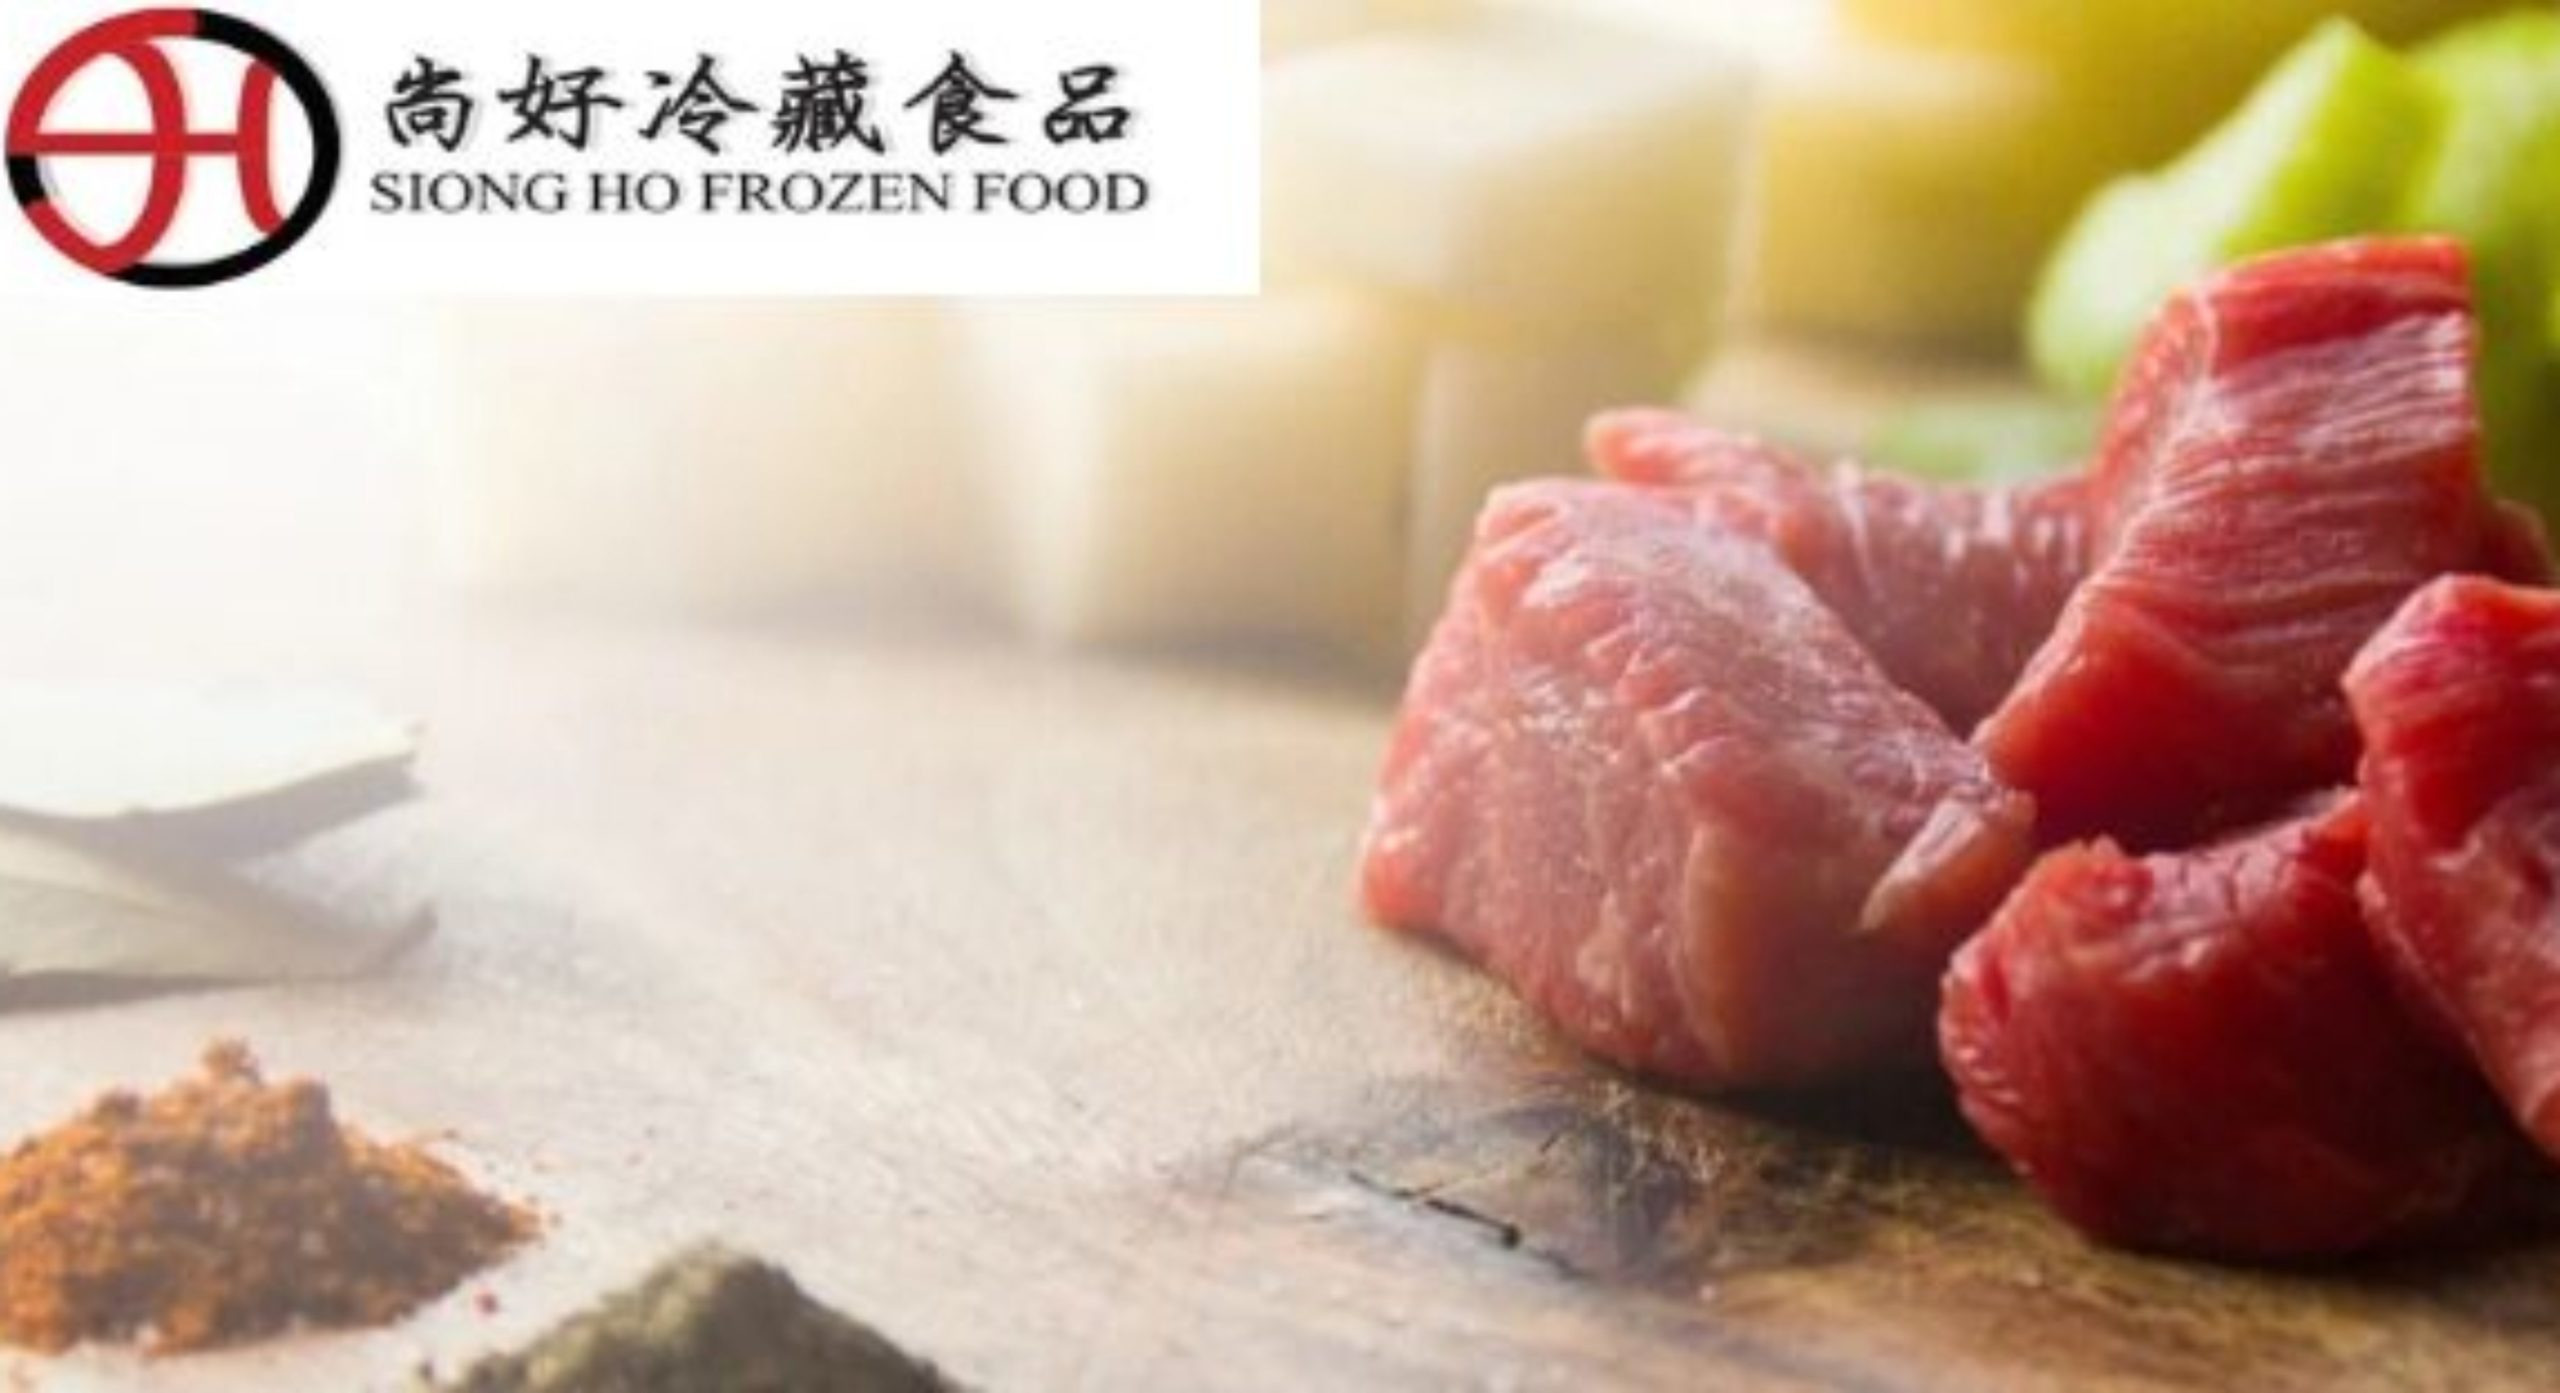 SIONG HO FROZEN FOOD